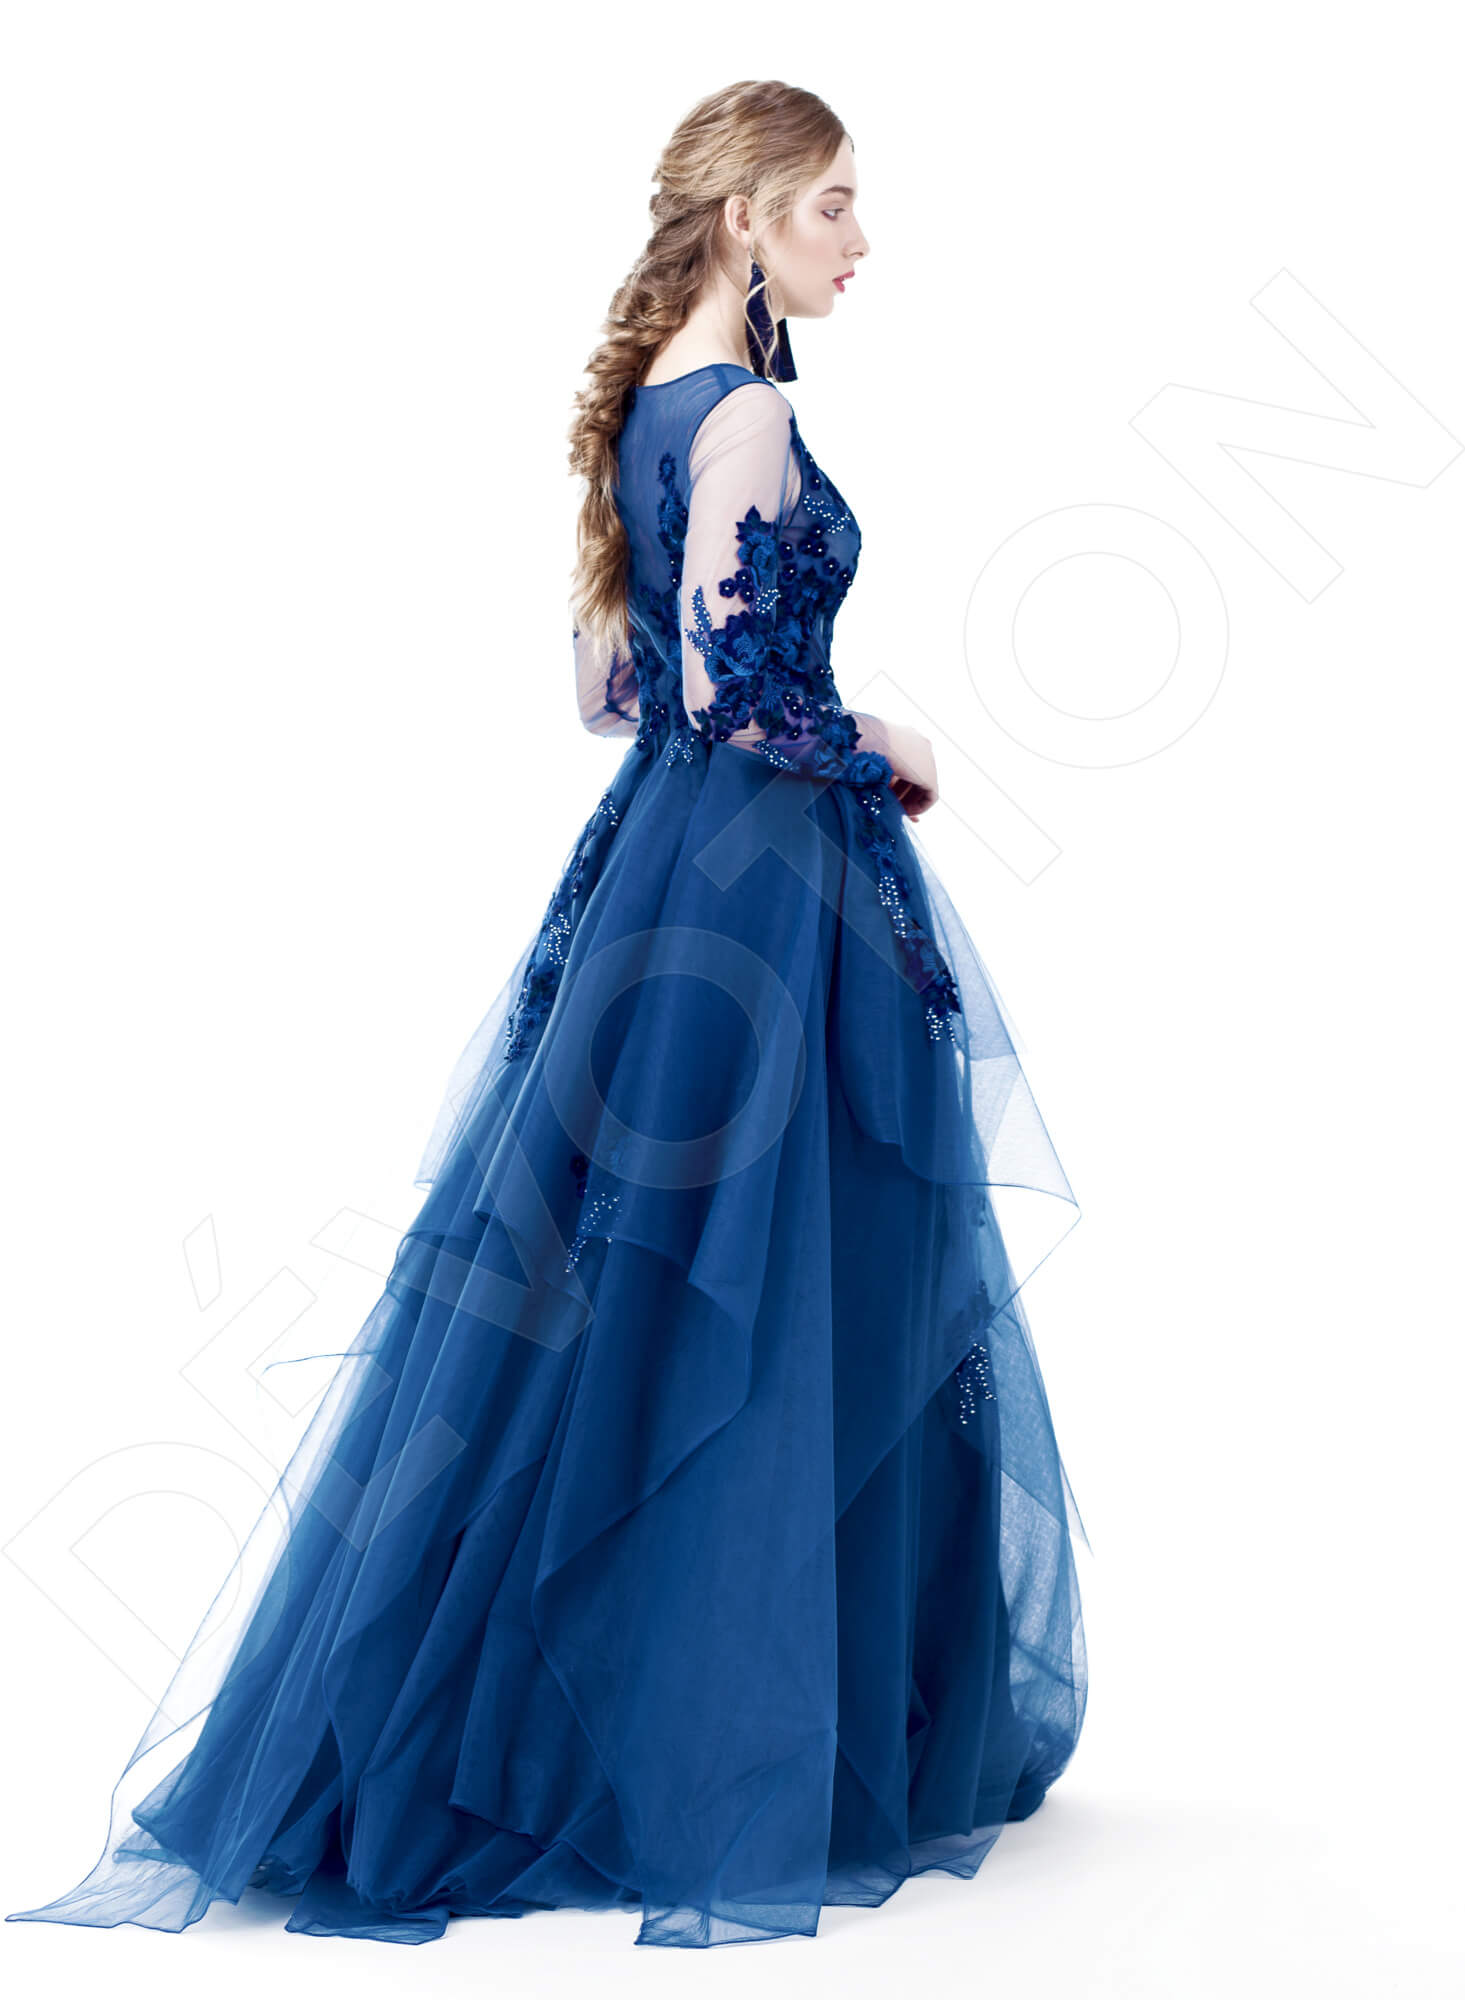 What to wear to prom